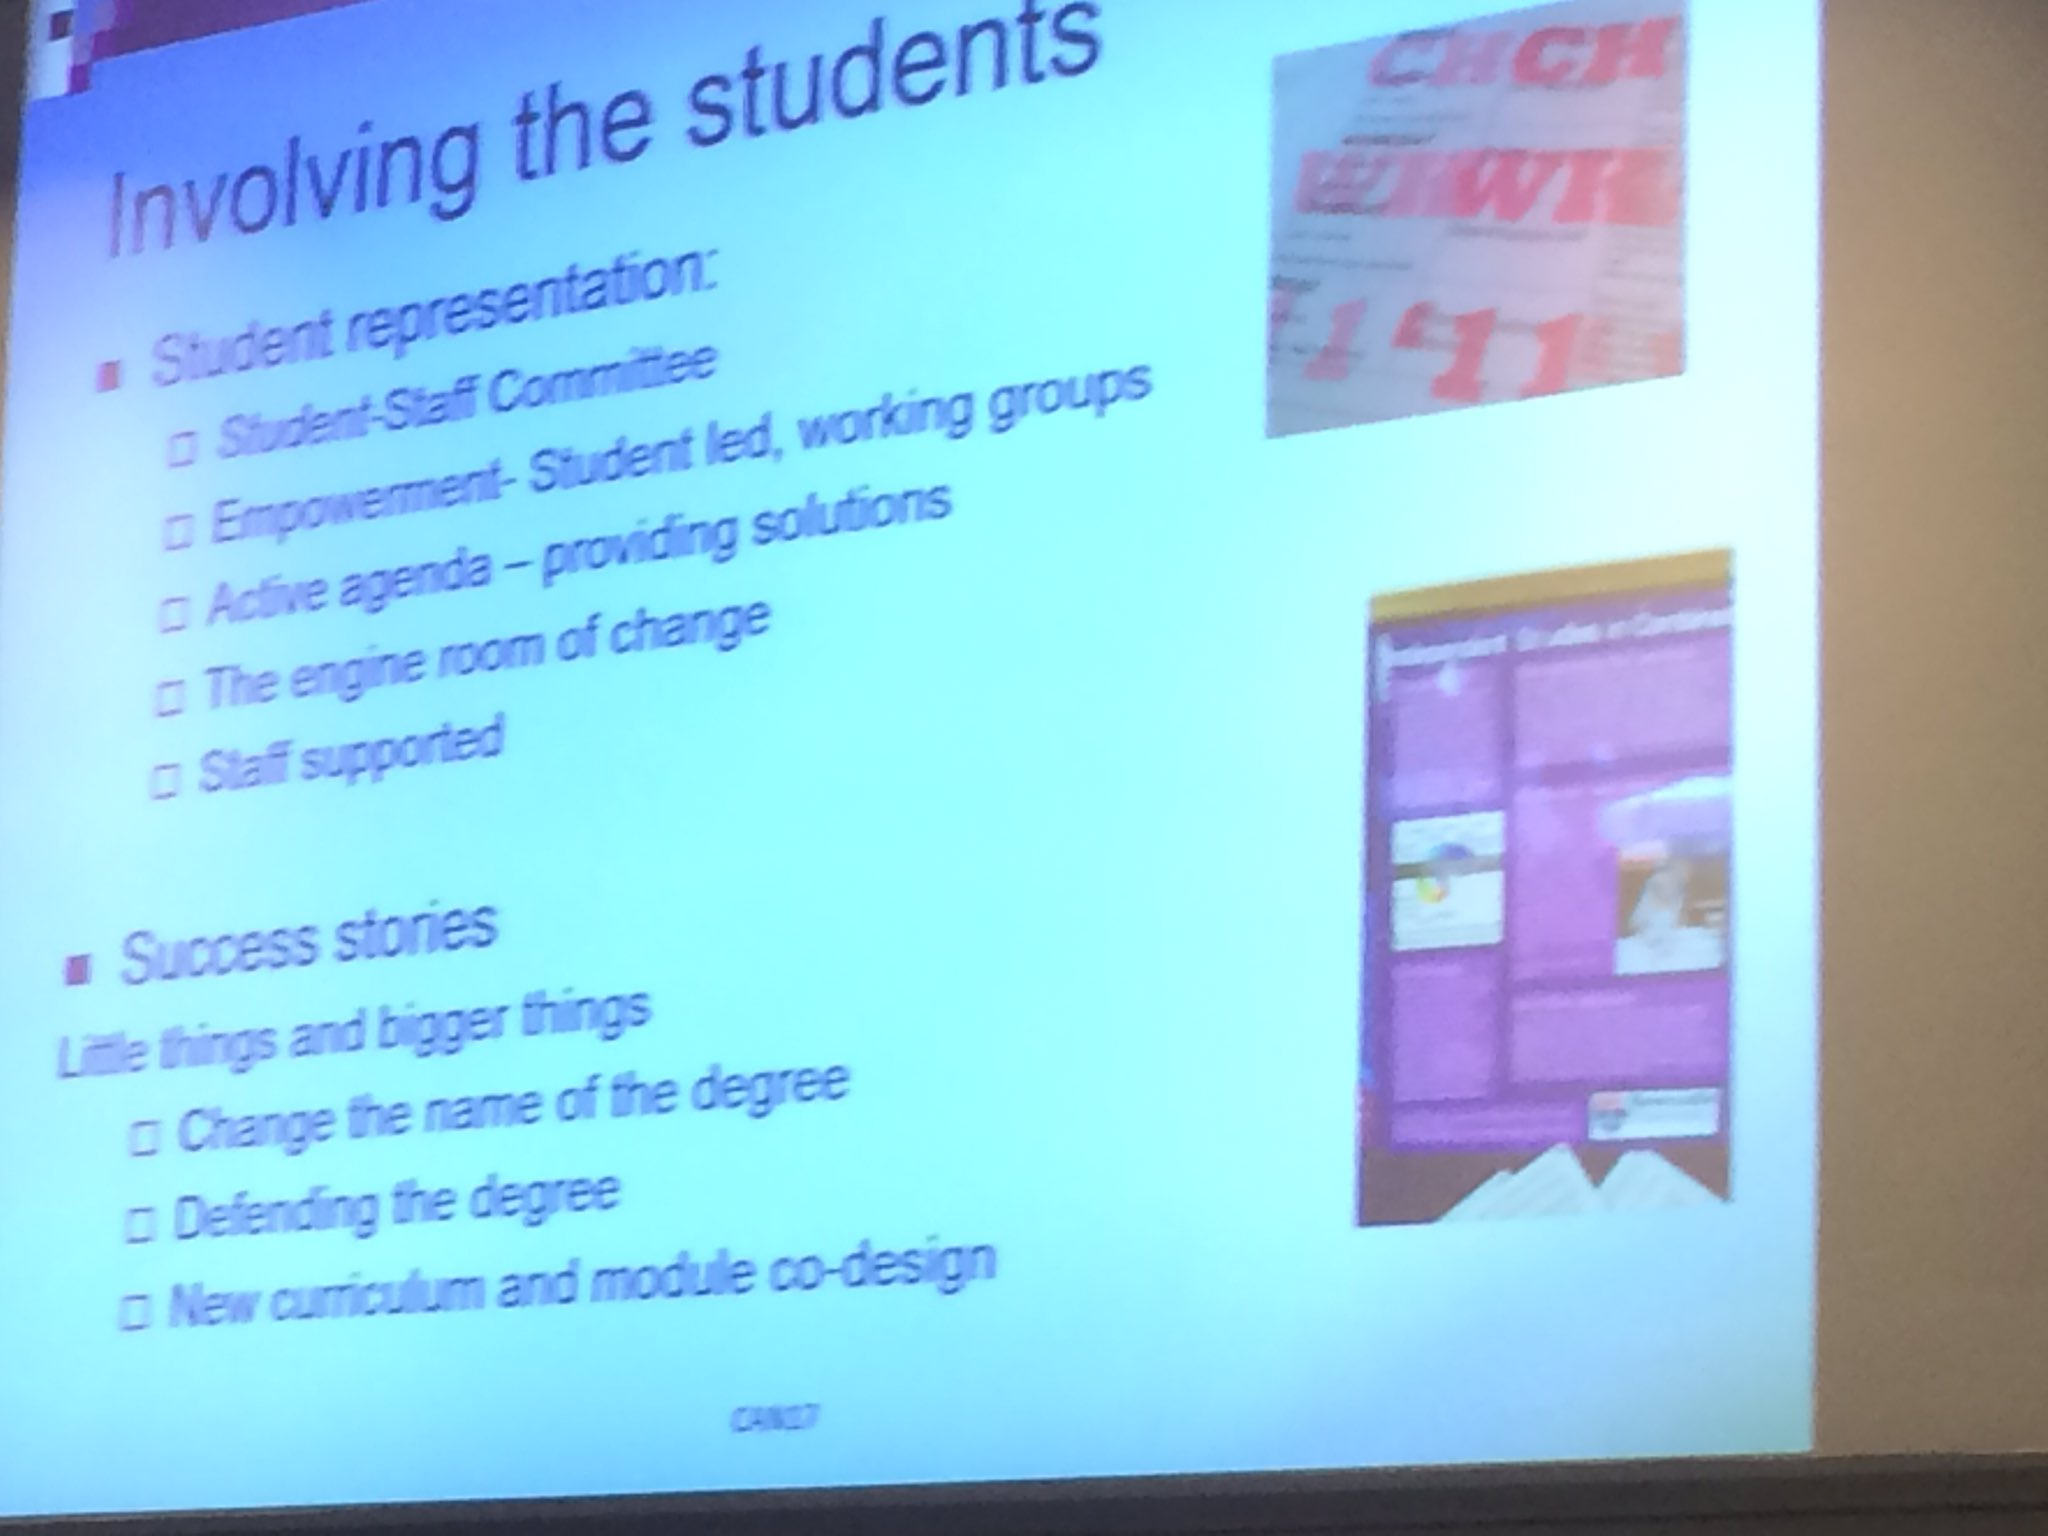 Involving students at Newcastle uni #jiscCAN17 https://t.co/wI0ZLAW8Zy